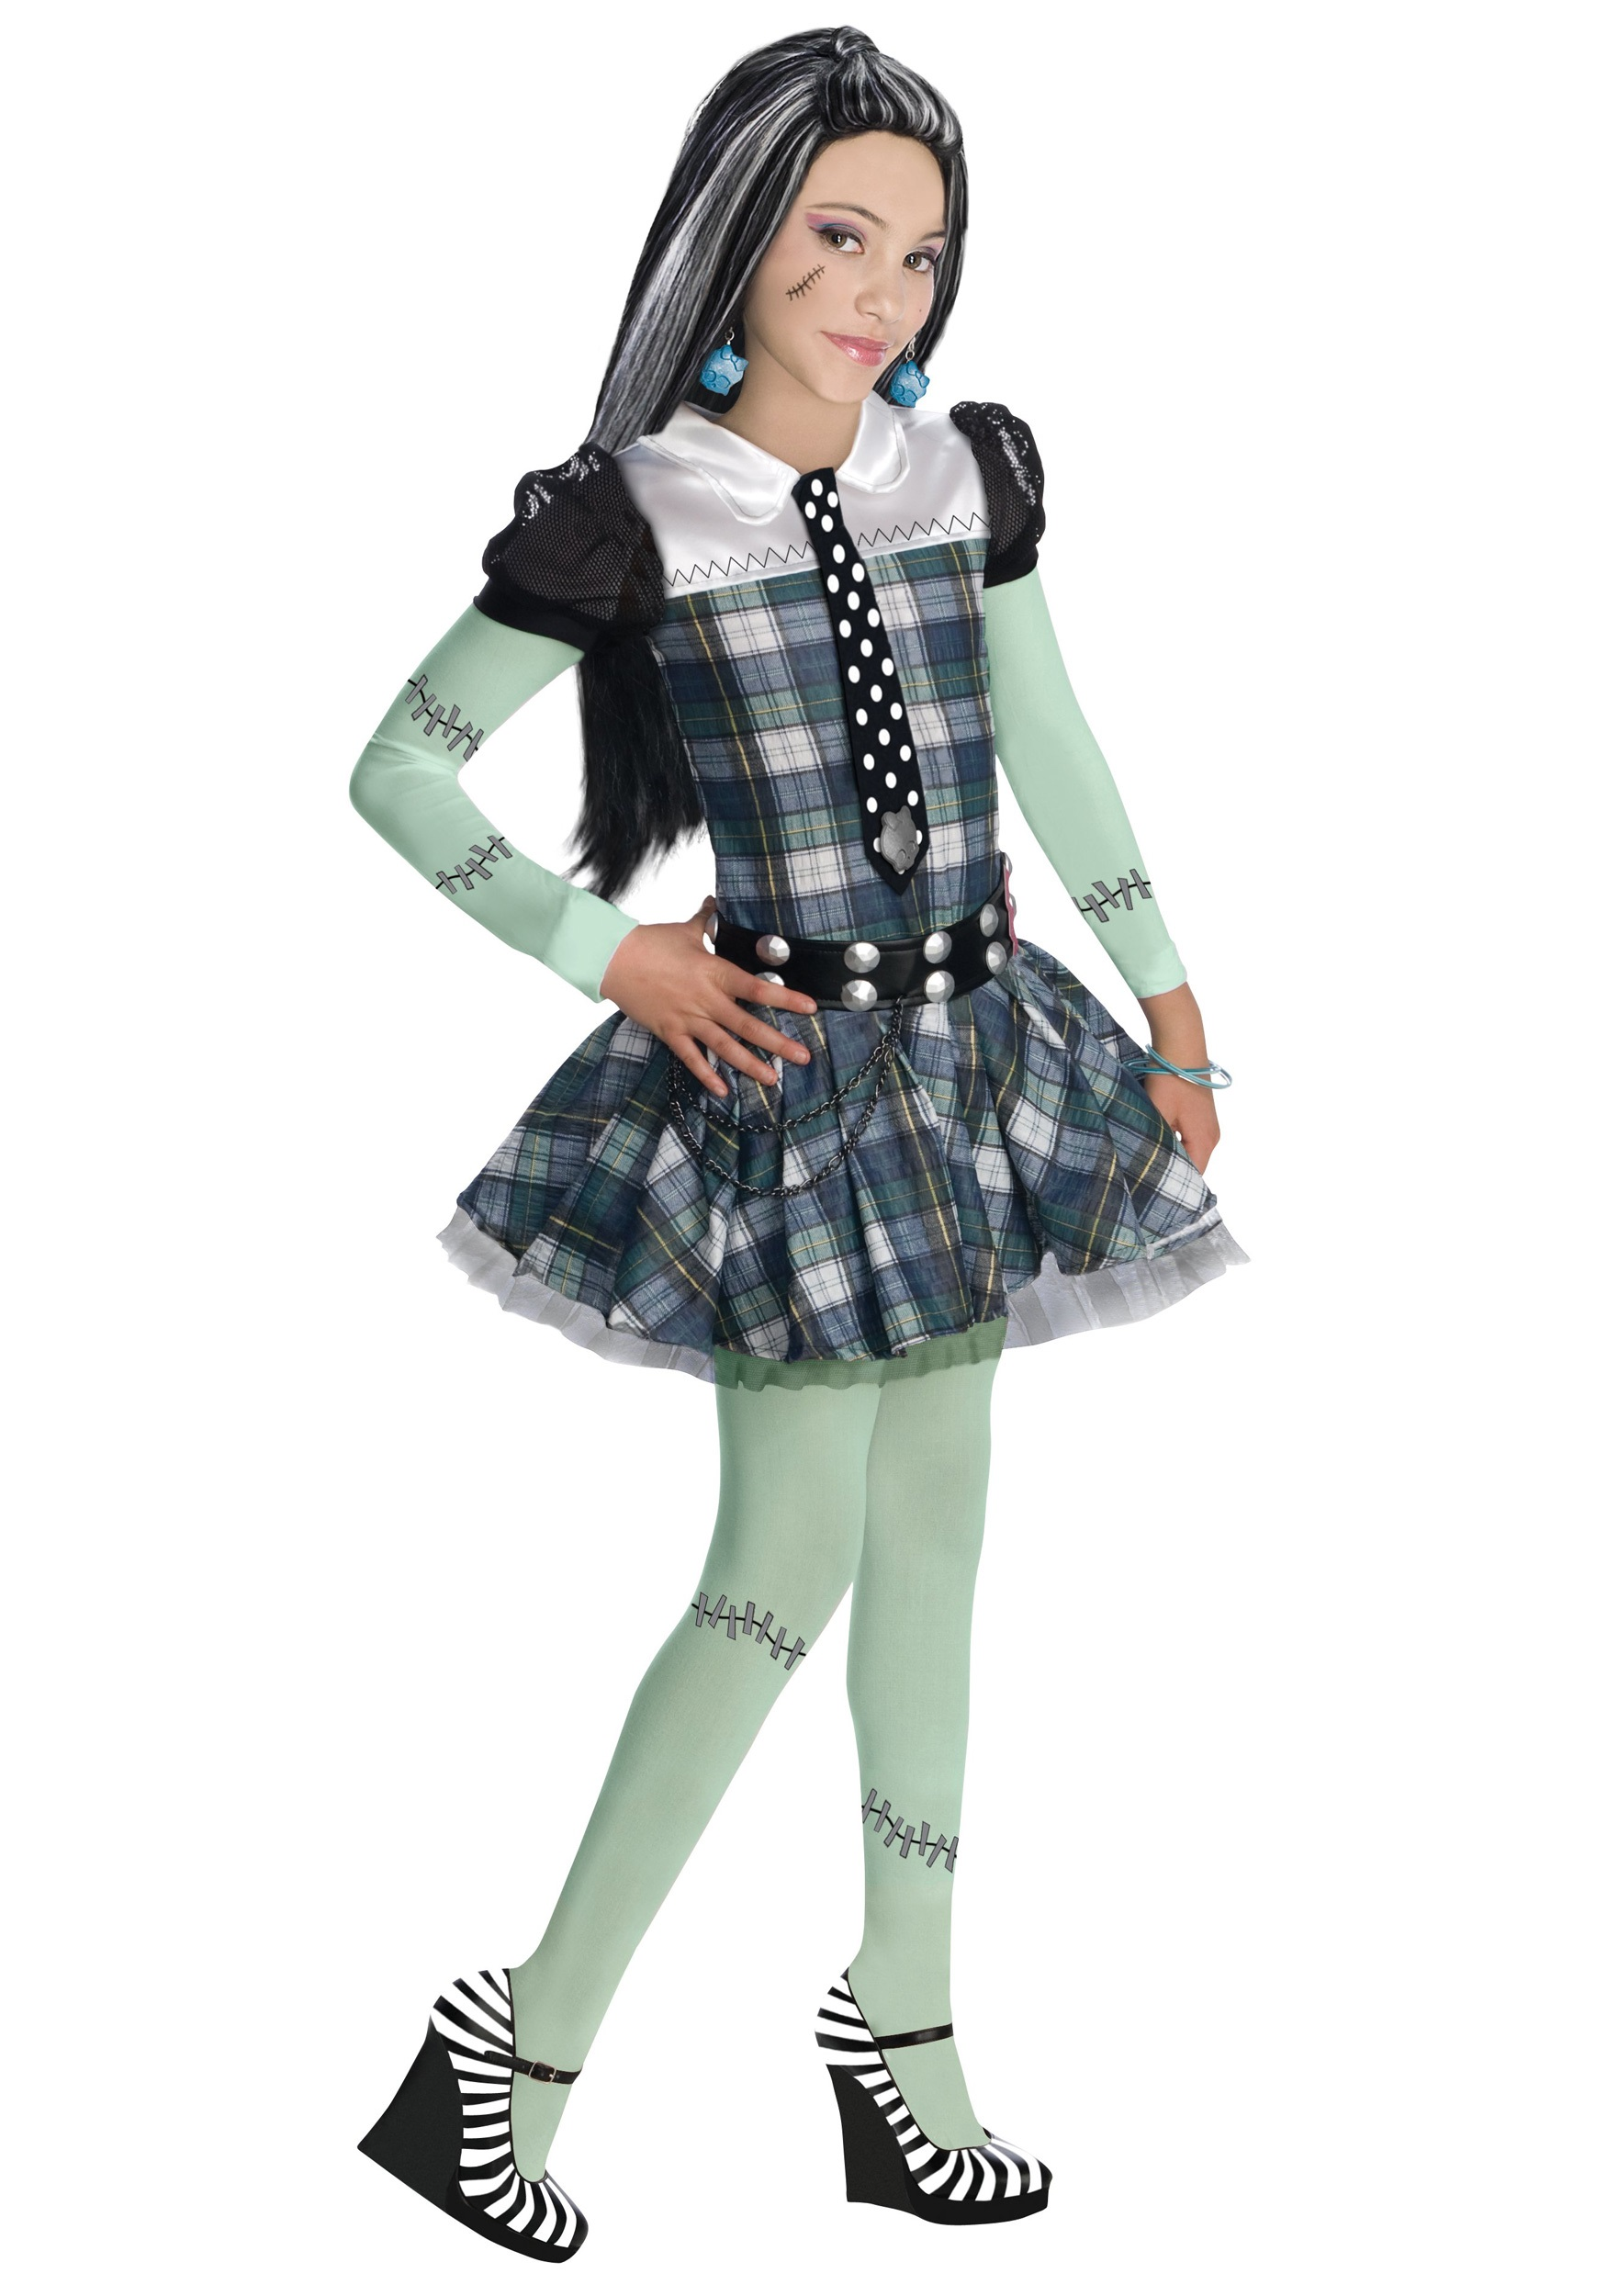 sc 1 st  Halloween Costumes : halloween costumes monster high  - Germanpascual.Com